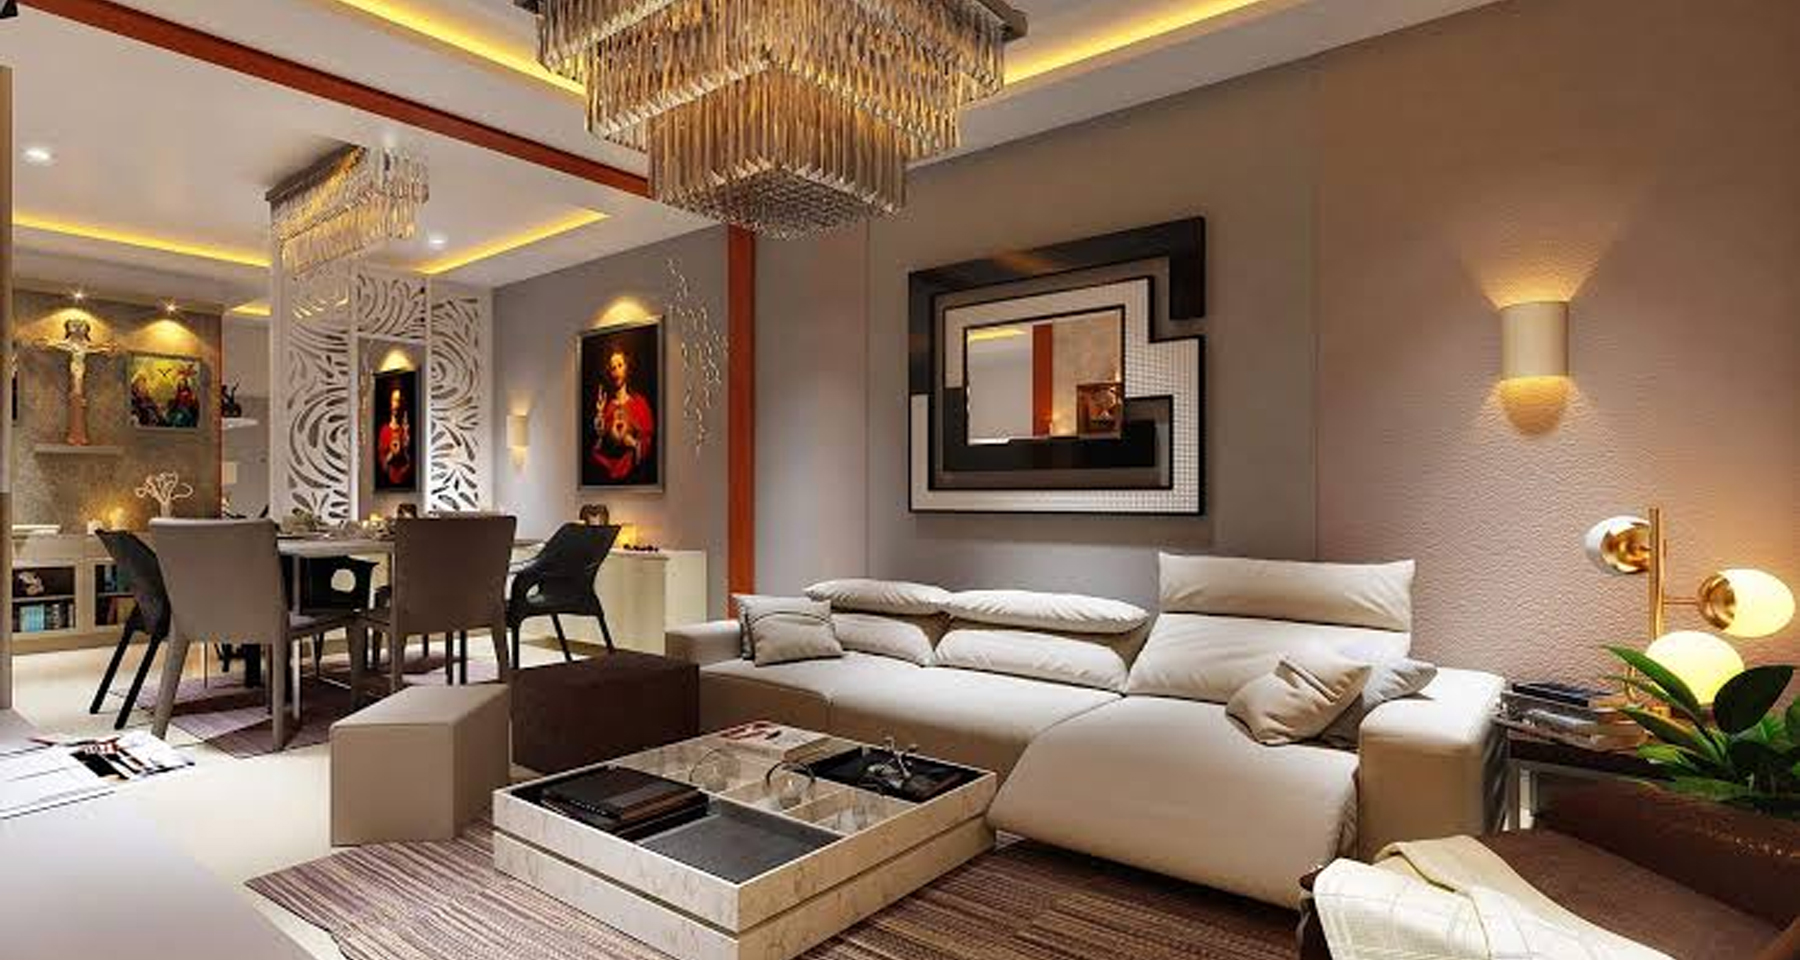 Samridhi Grand Avenue residential property, Noida Extension